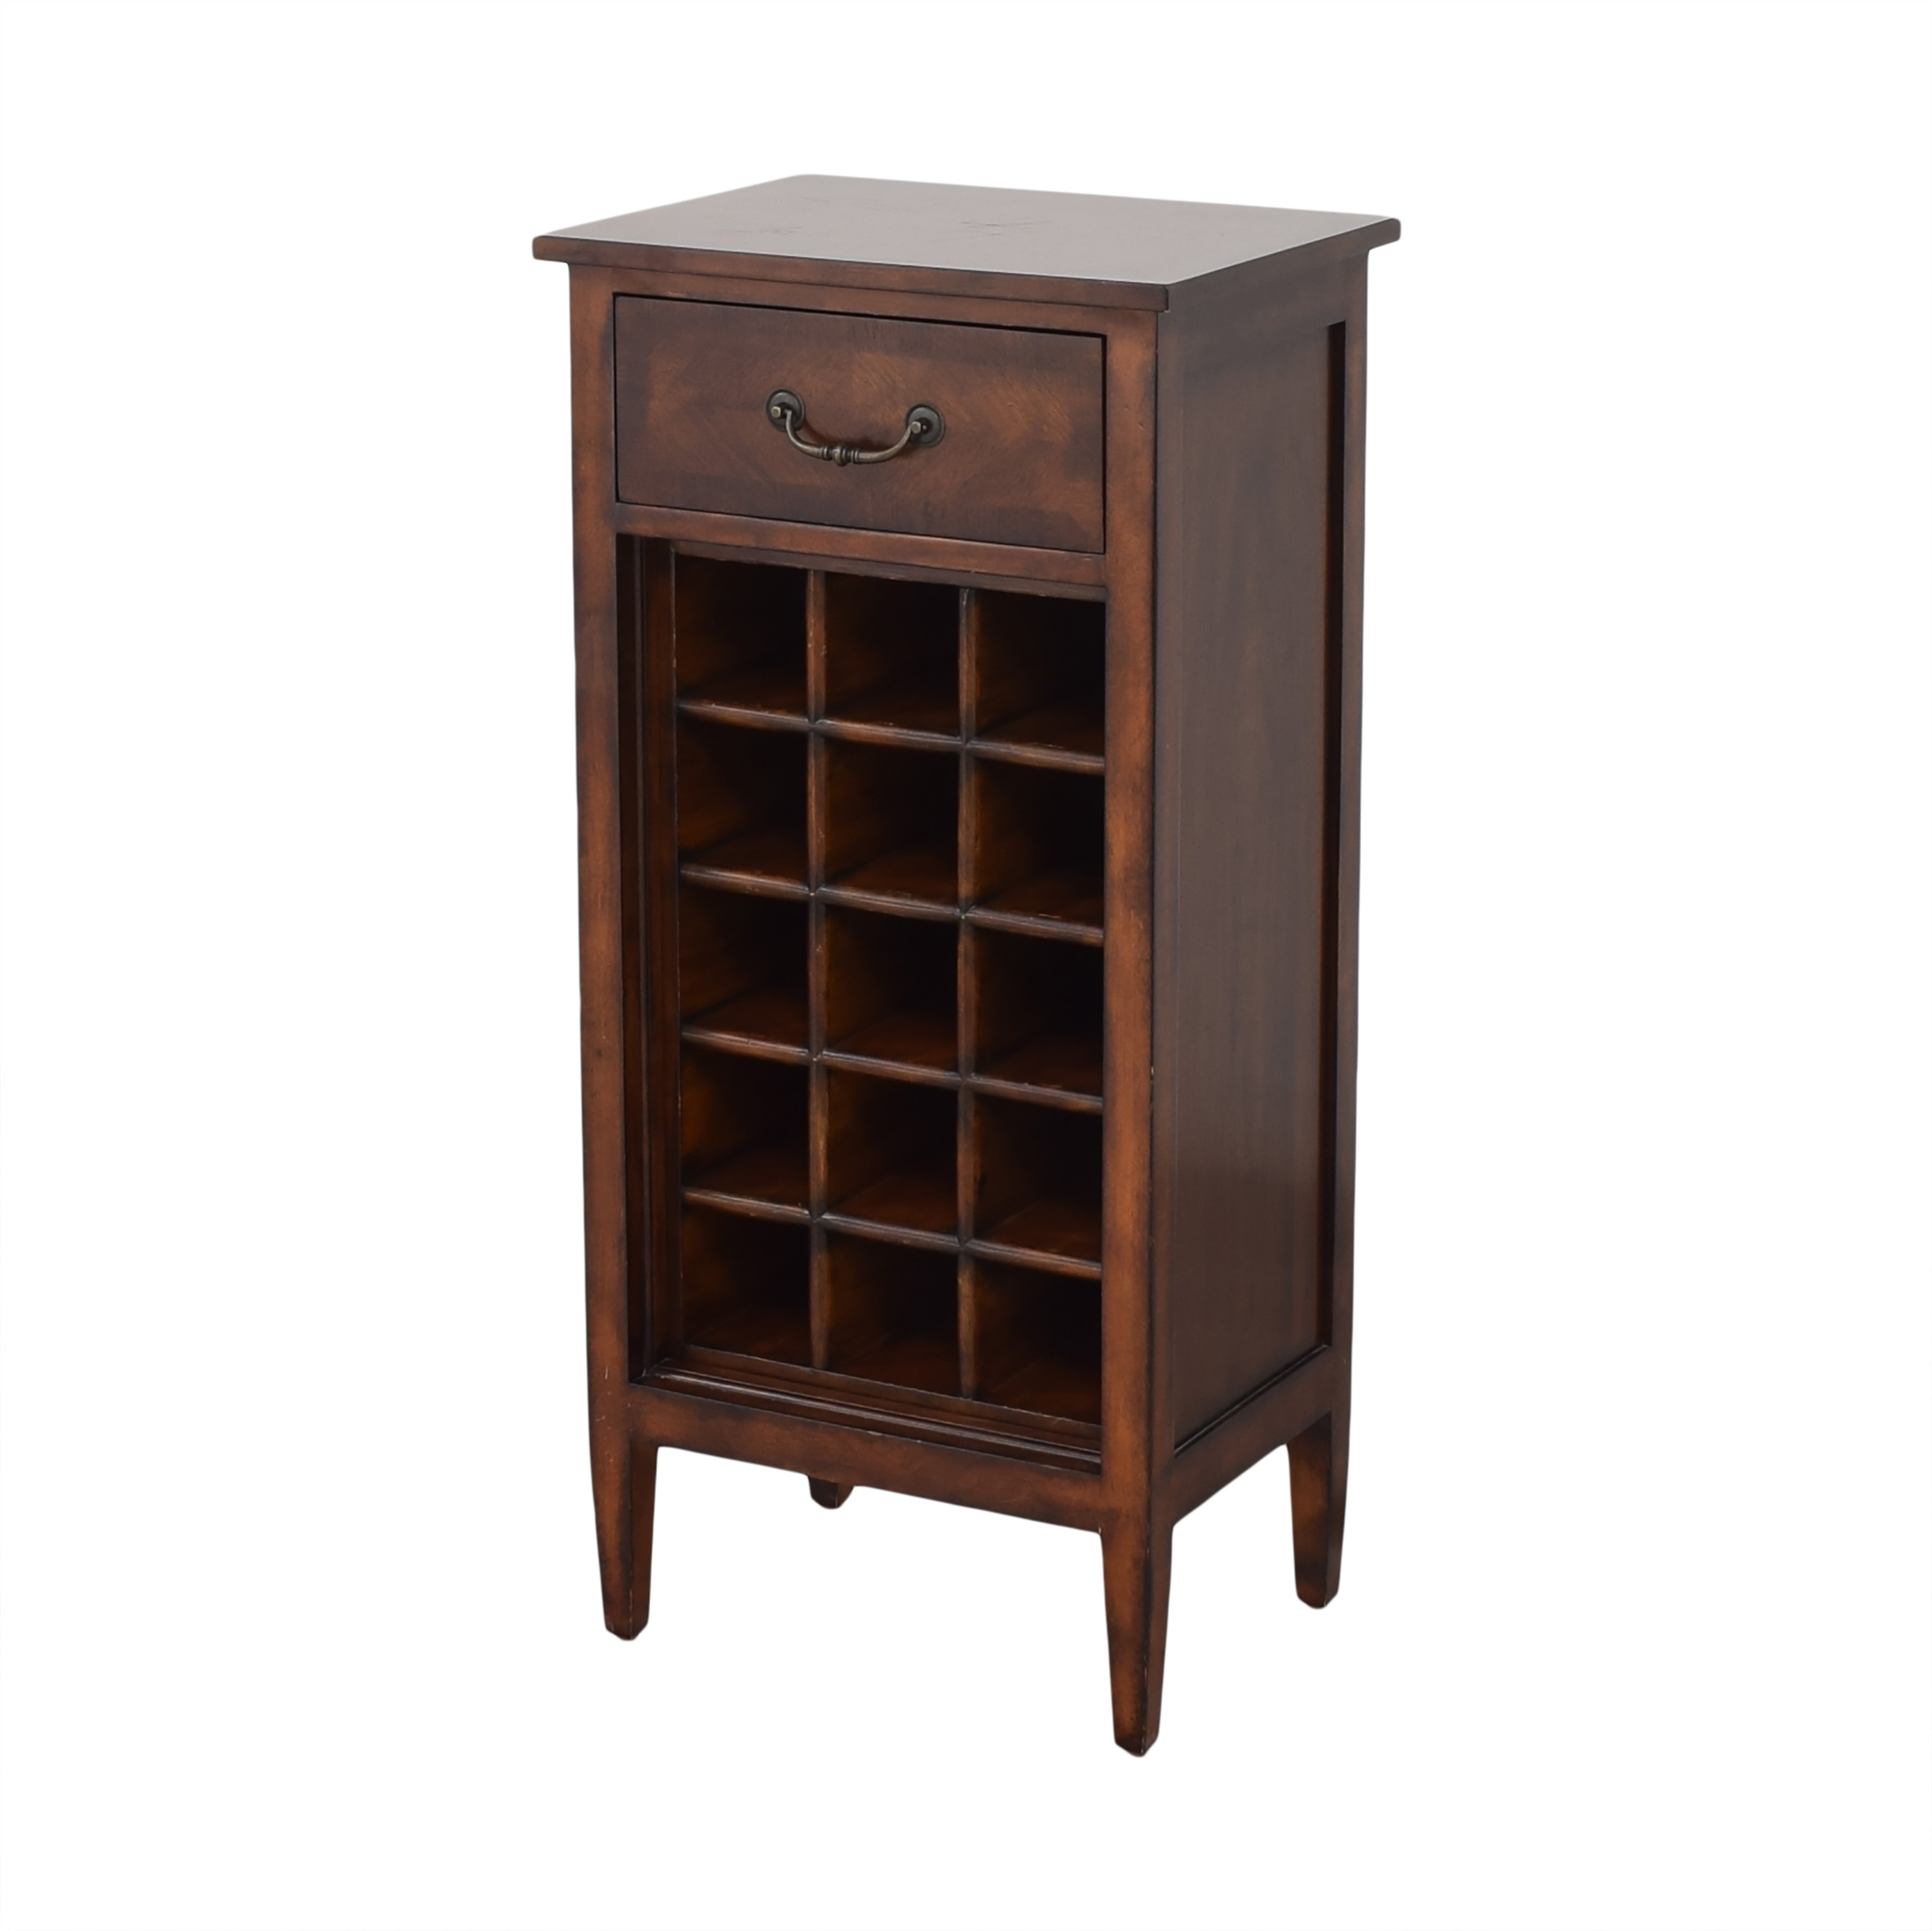 Ethan Allen Ethan Allen Wine Cabinet and Side Table brown